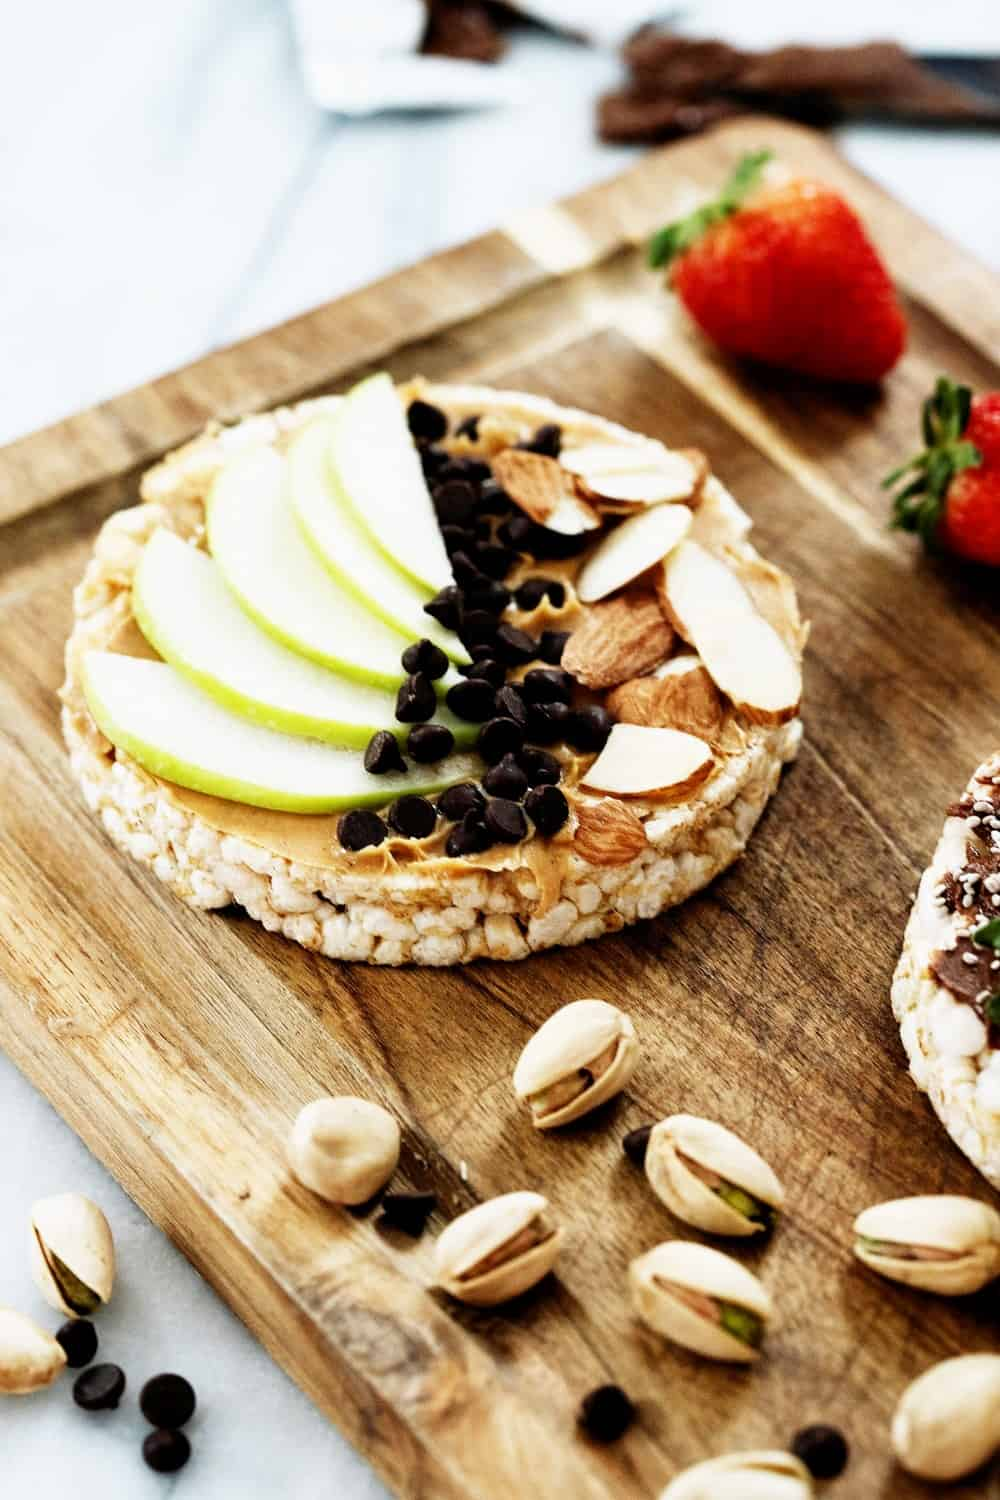 a rice cake topped with nut butter, apples, slivered almonds, and mini dark chocolate chips